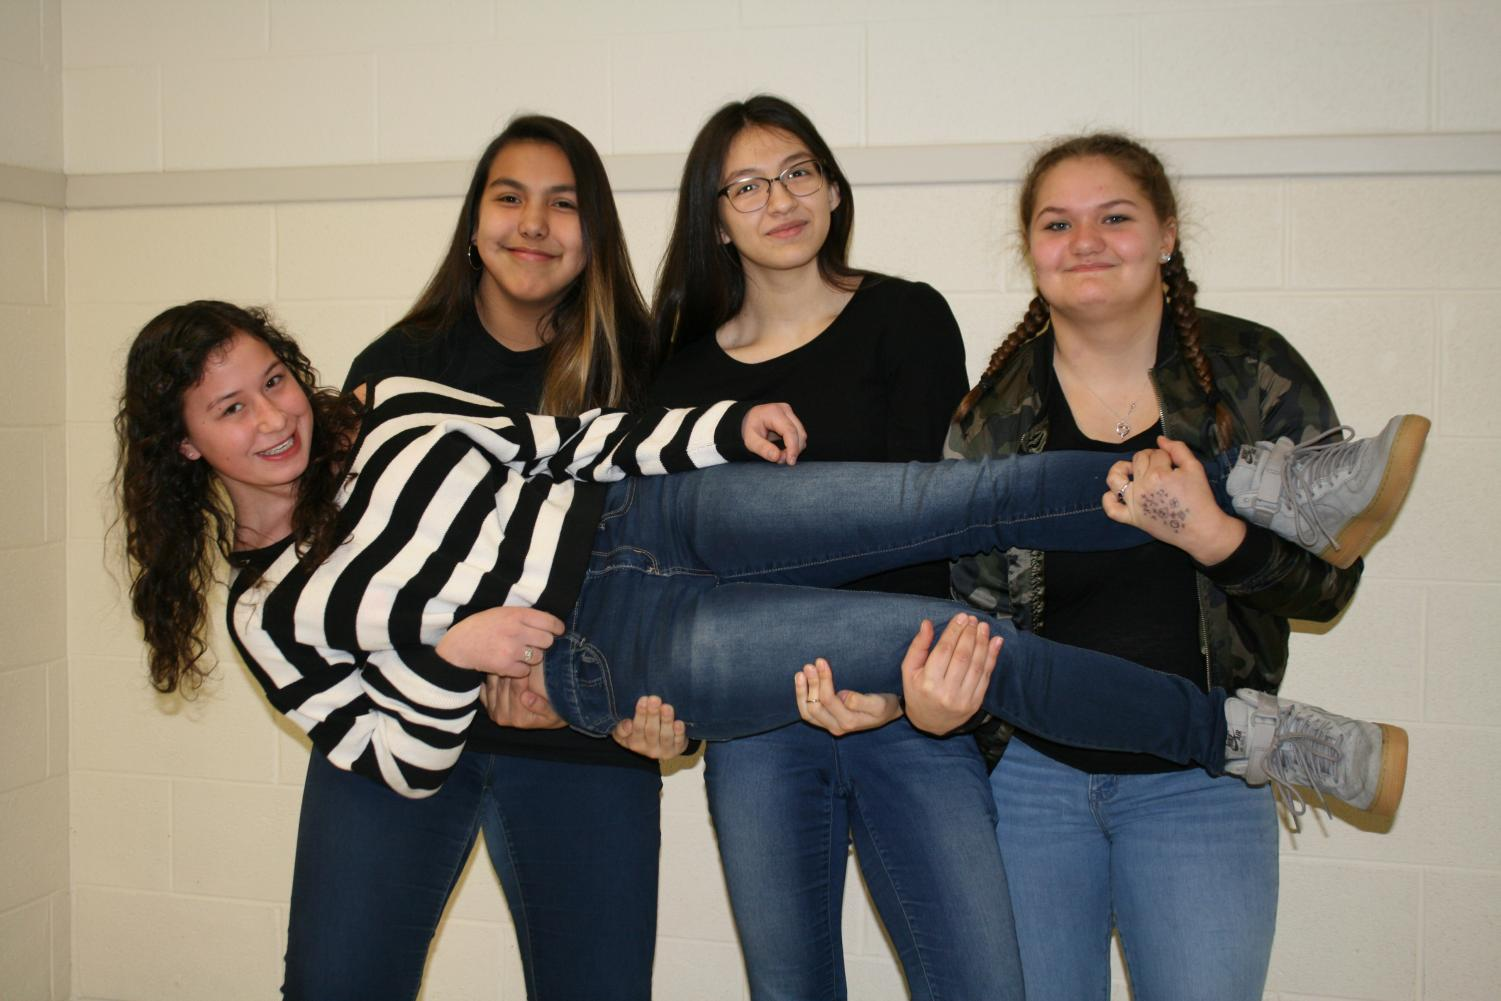 RB wrestlers from (l. to r. standing) Leila Garcia, Daniela Quiroga, Lauren Aprim. Anna O'Keefe (Being lift)